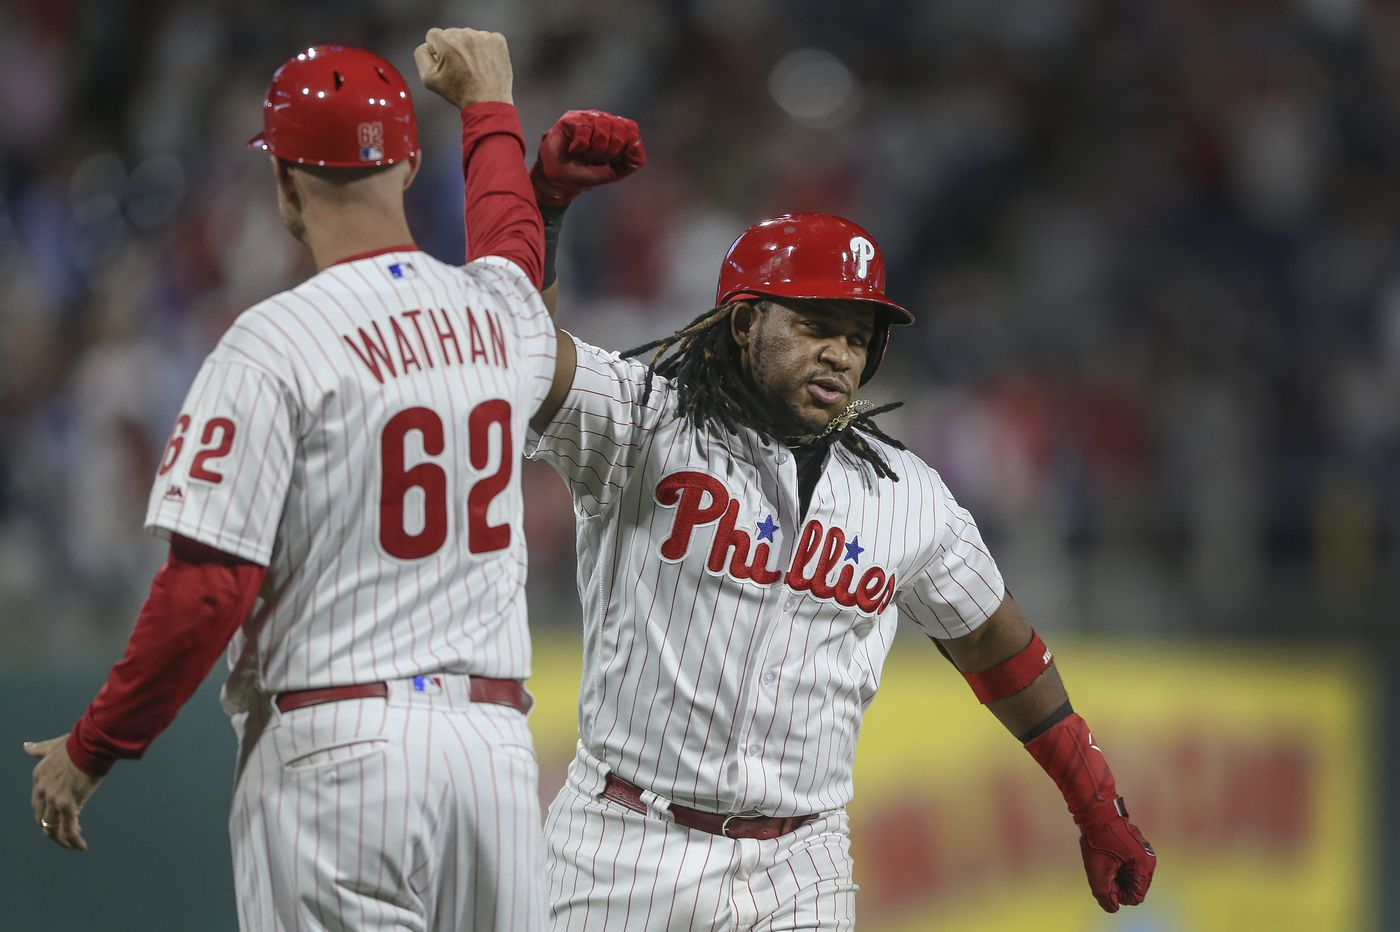 Phillies' Maikel Franco making a play to stay | Extra Innings